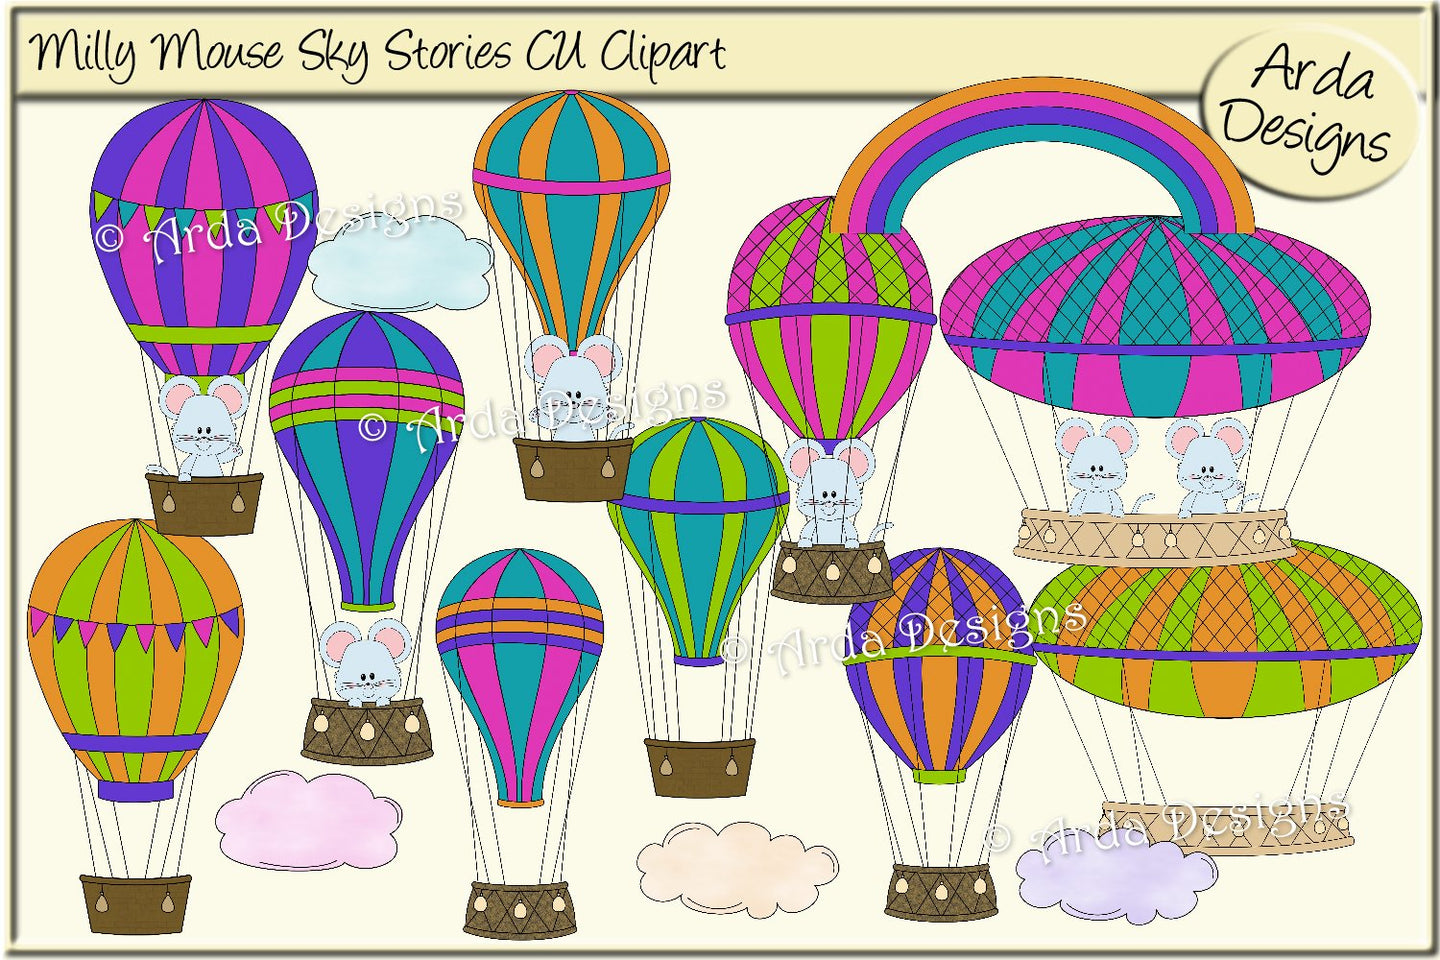 Milly Mouse Sky Stories CU Clipart